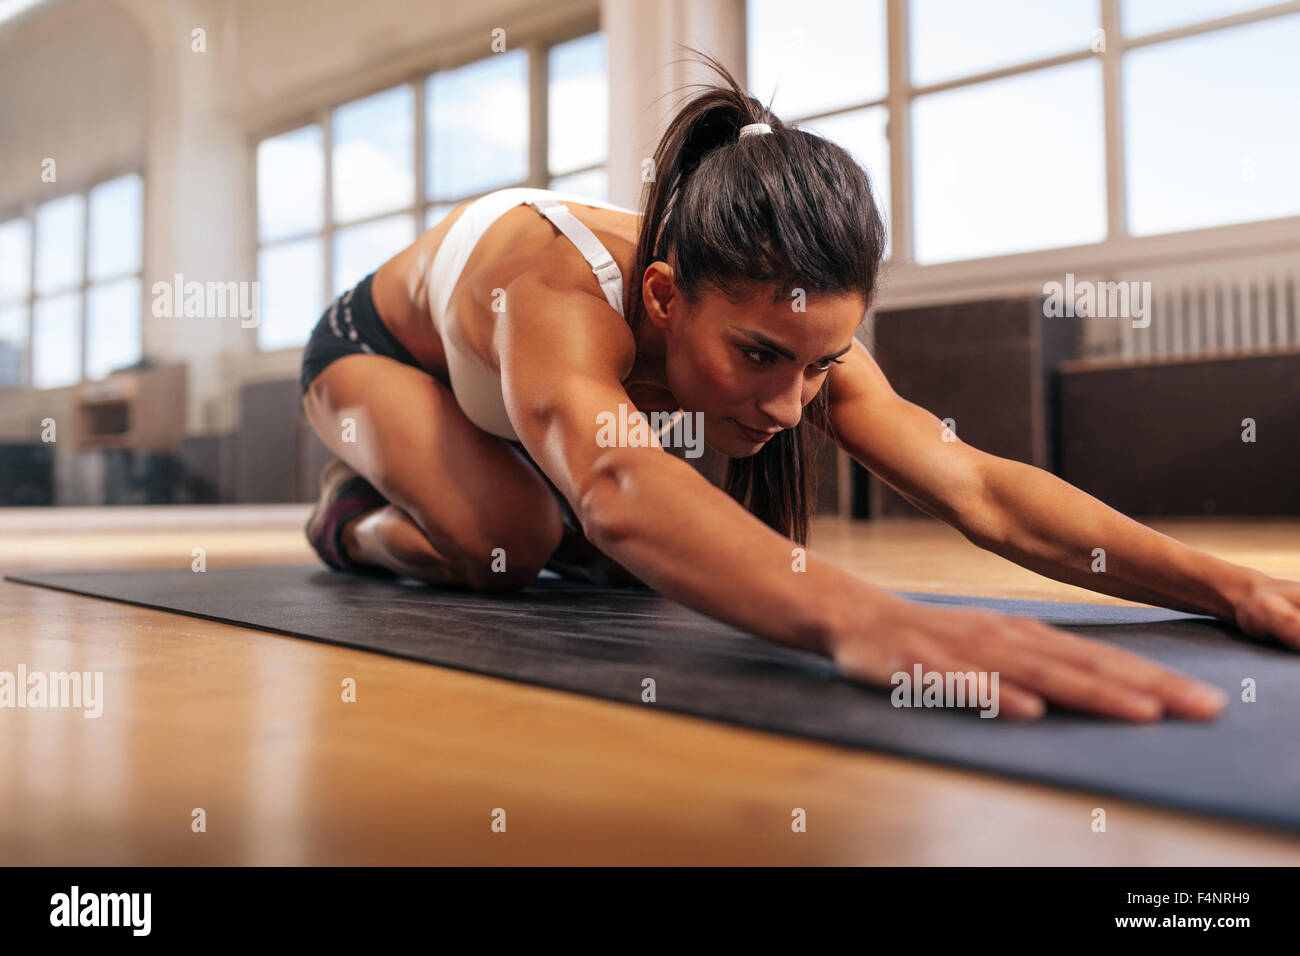 Young muscular woman doing stretching workout on fitness mat. Female performing yoga at gym. - Stock Image